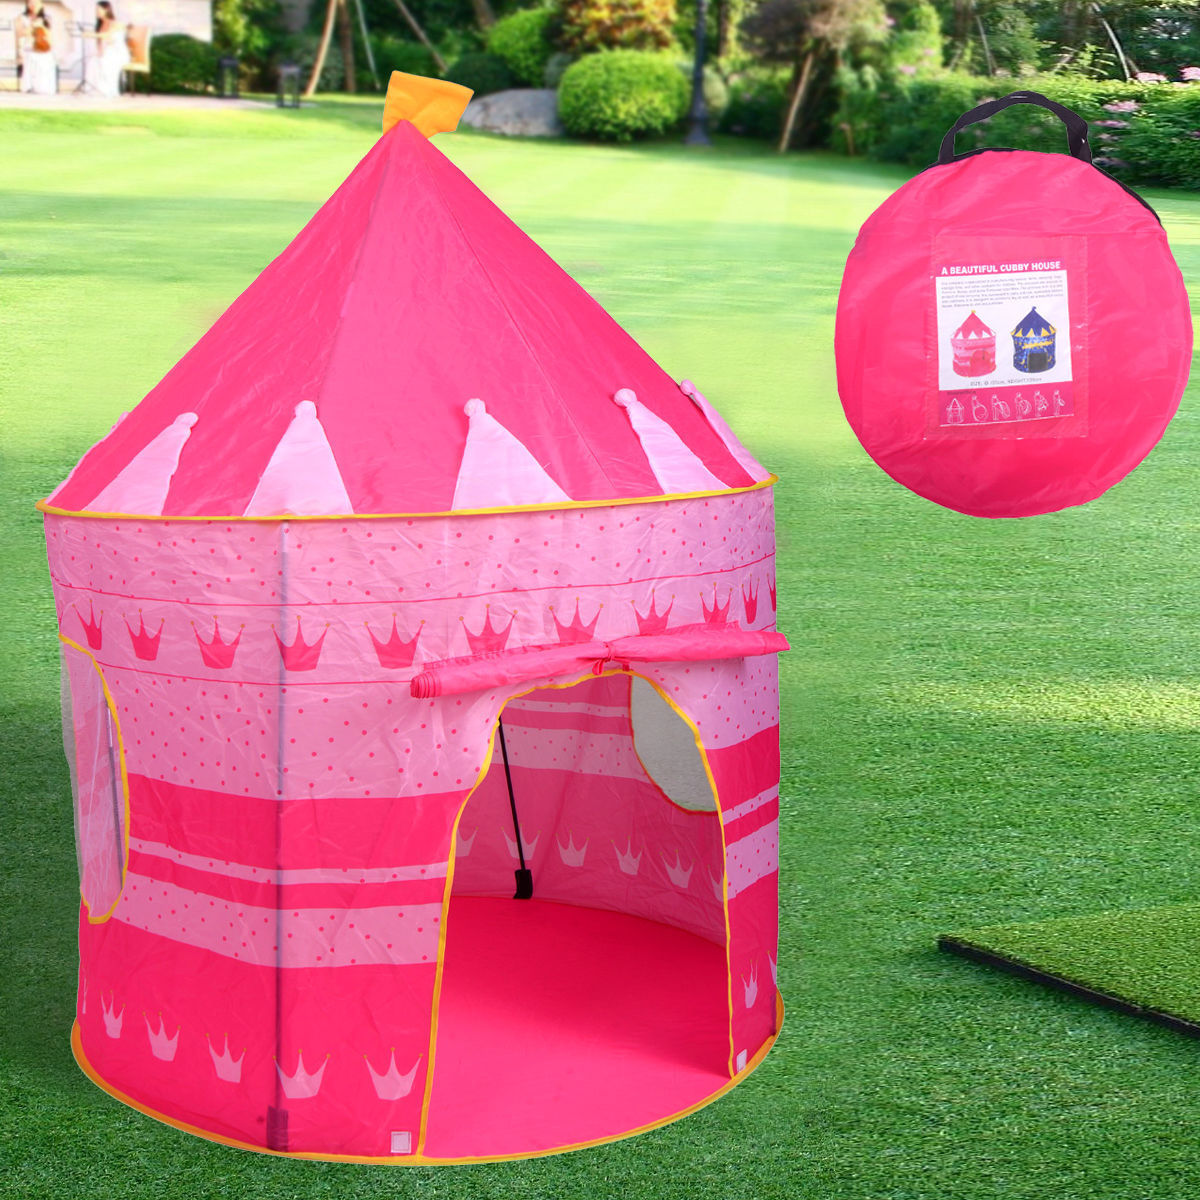 Portable Pink Folding Play Tent Kids Girl Princess Castle Fairy Cubby House New & Portable Pink Folding Play Tent Kids Girl Princess Castle Fairy ...